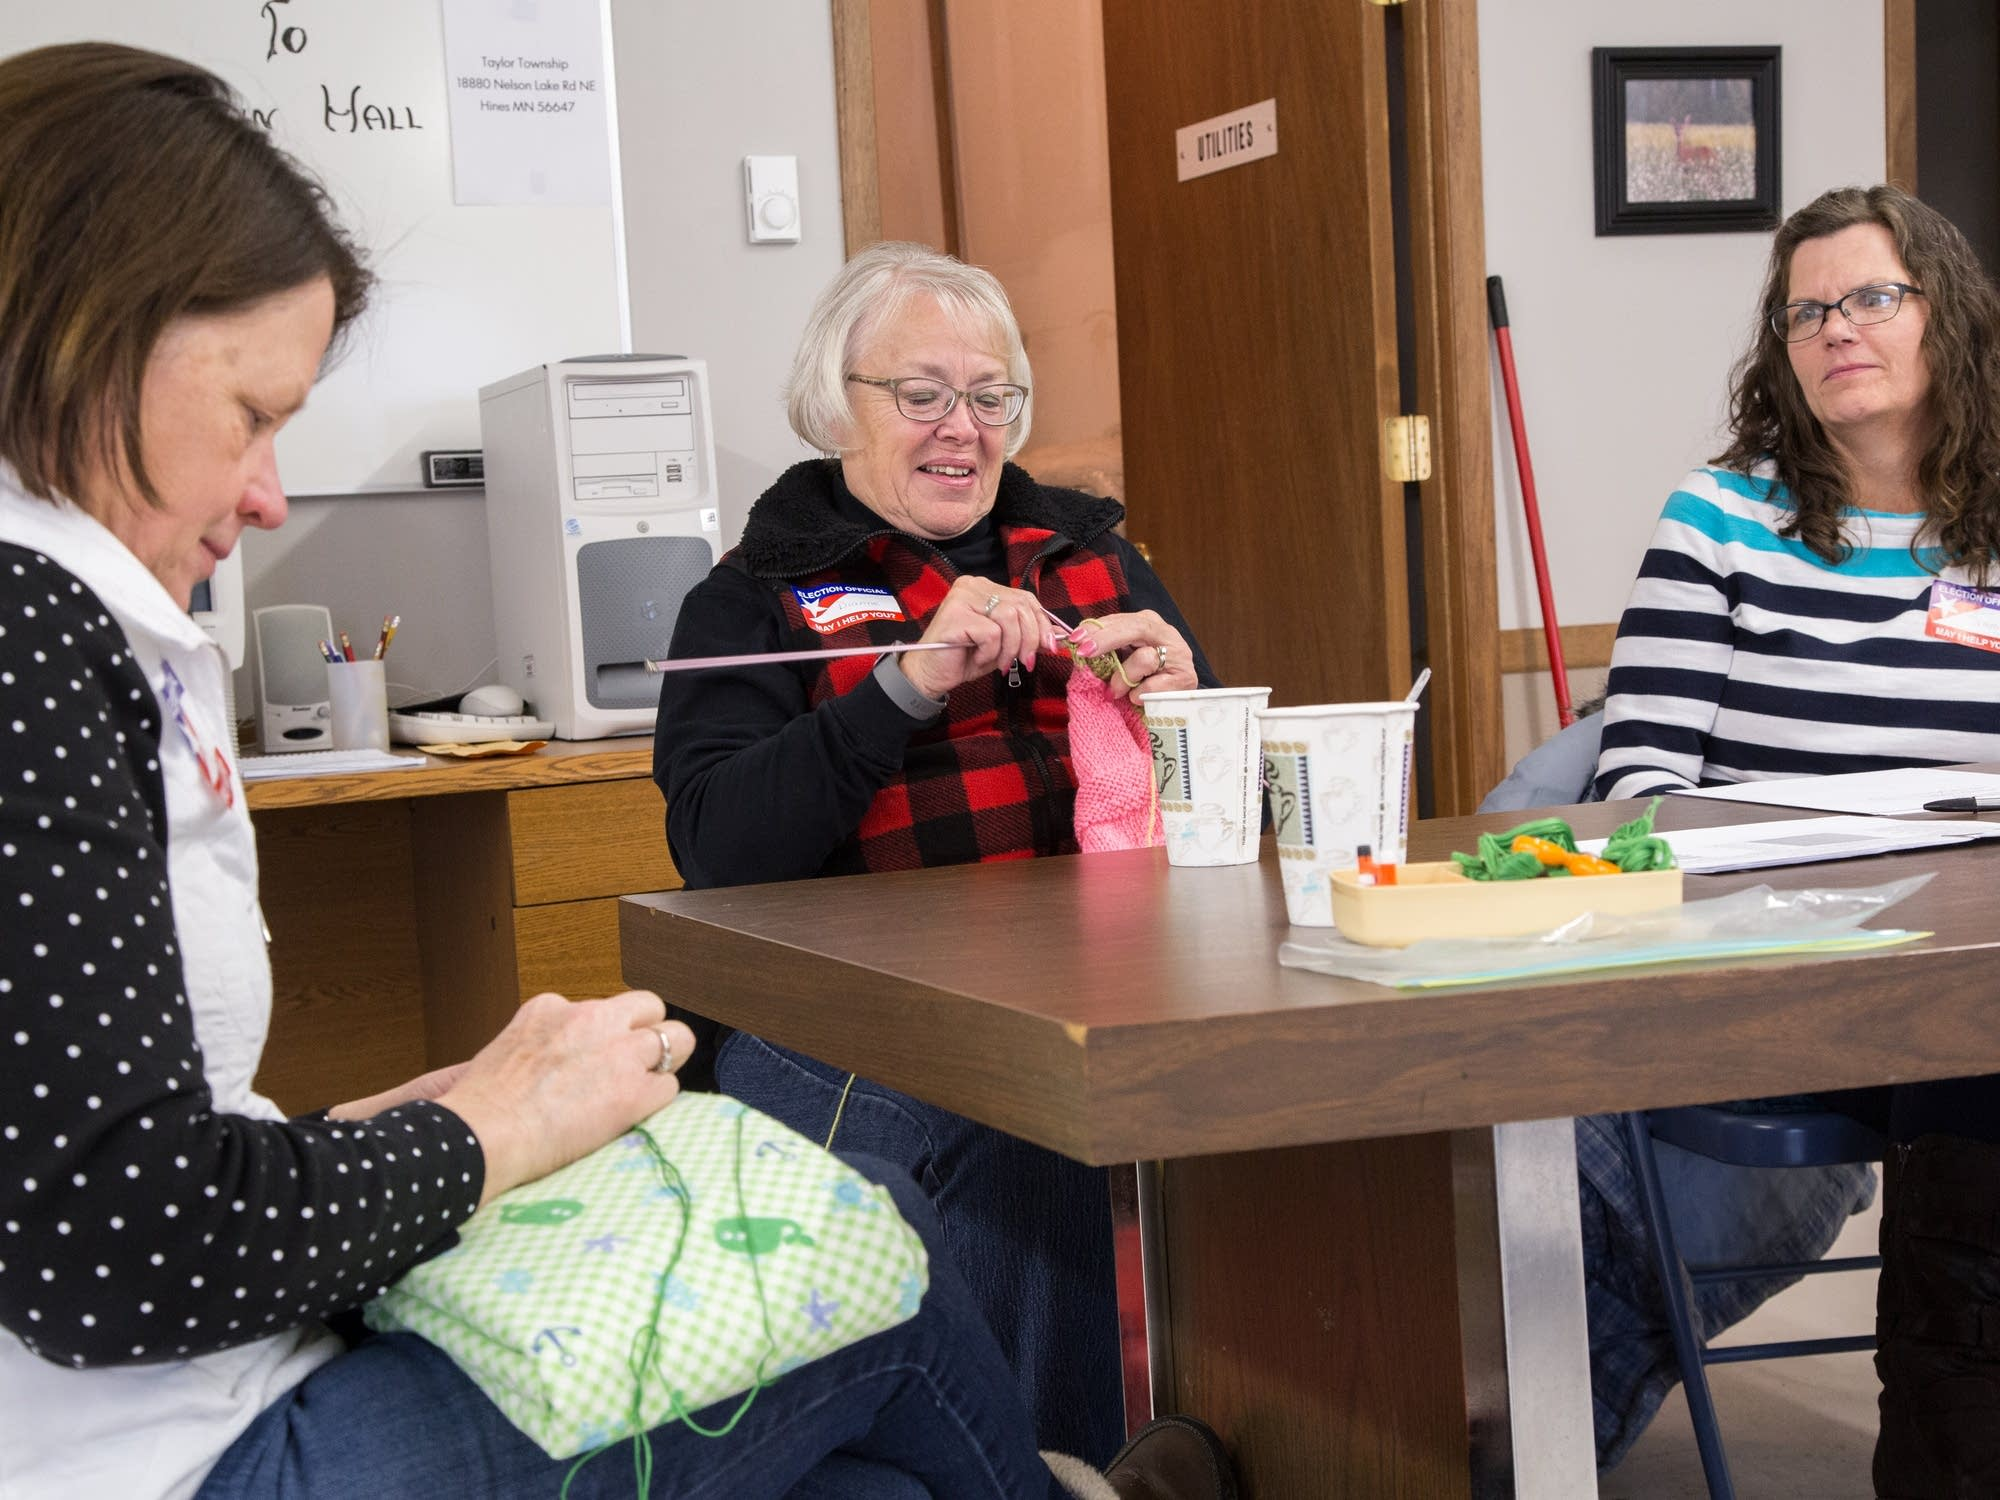 Joanne Barfknecht makes blankets while Dianne Sizer knits.